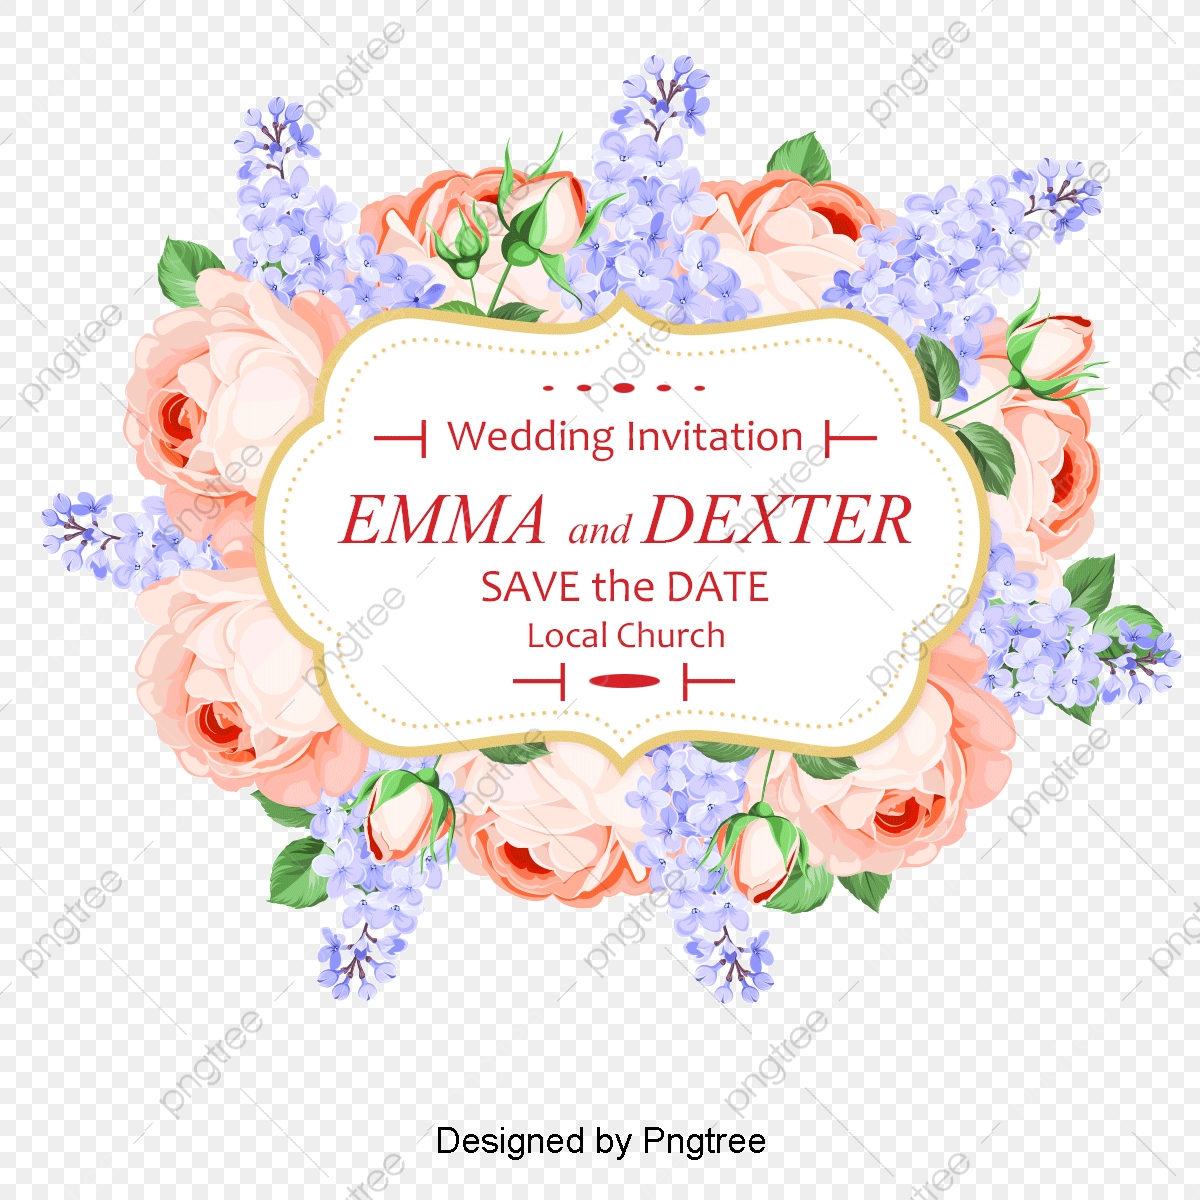 Wedding Greeting Cards Wedding Cards Cards Clipart Png Transparent Image And Clipart For Free Download